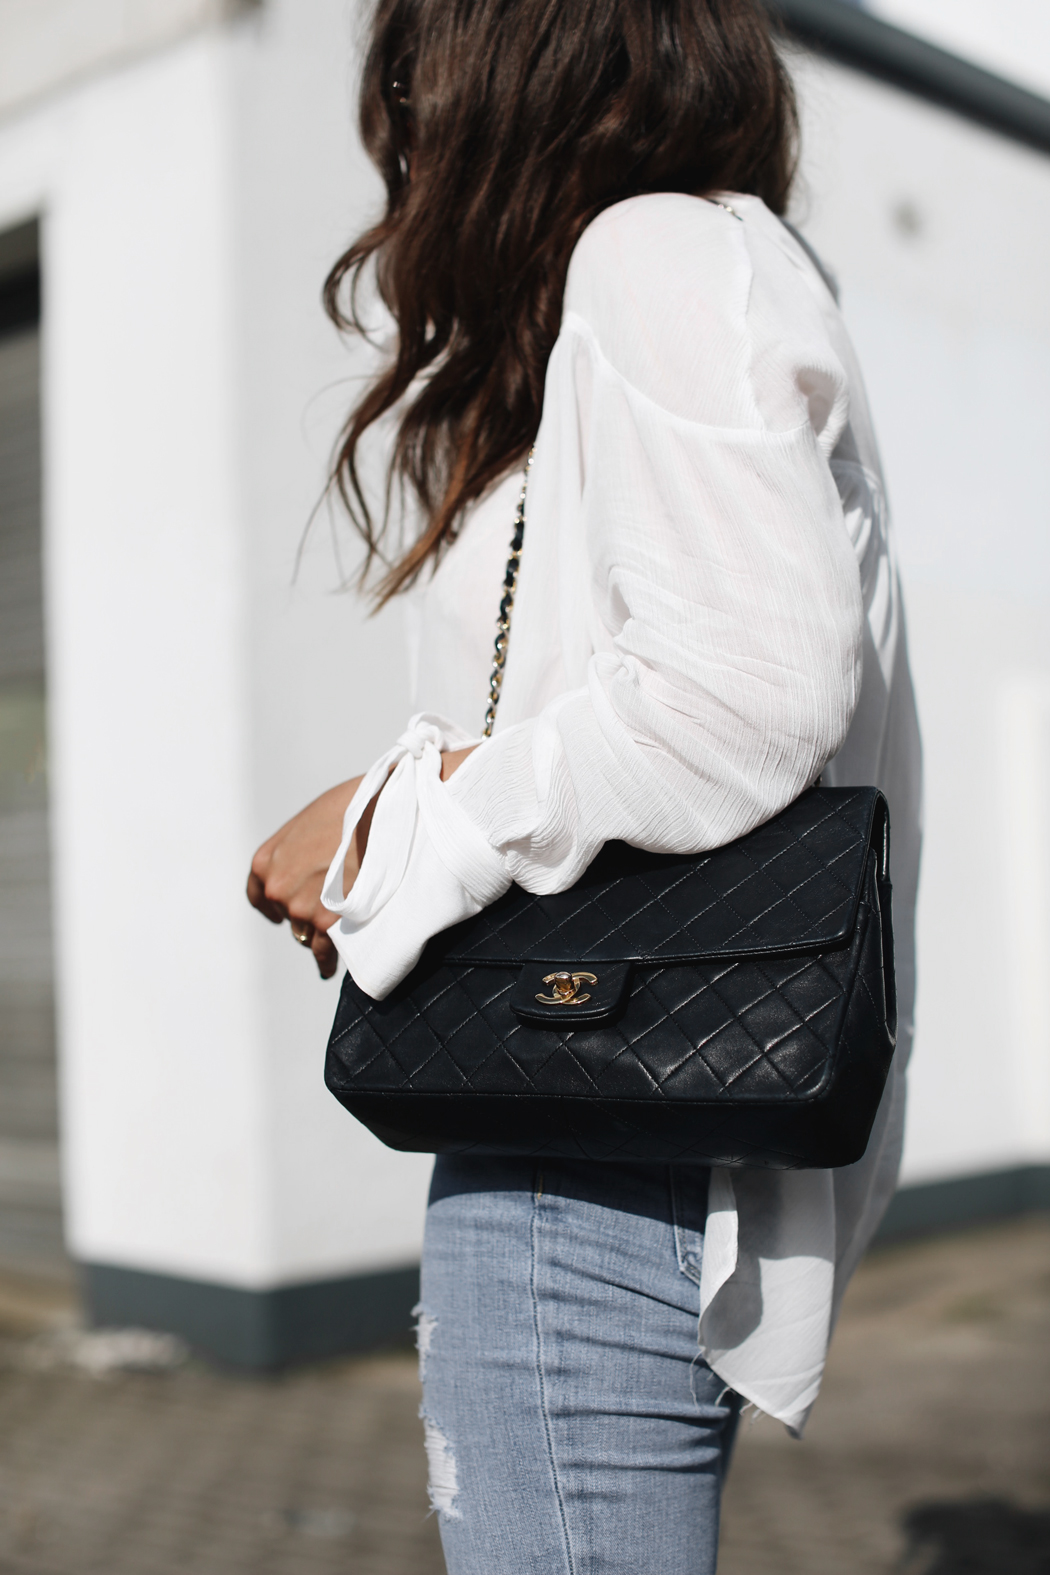 The Dashing Rider Chanel Bag Outfit